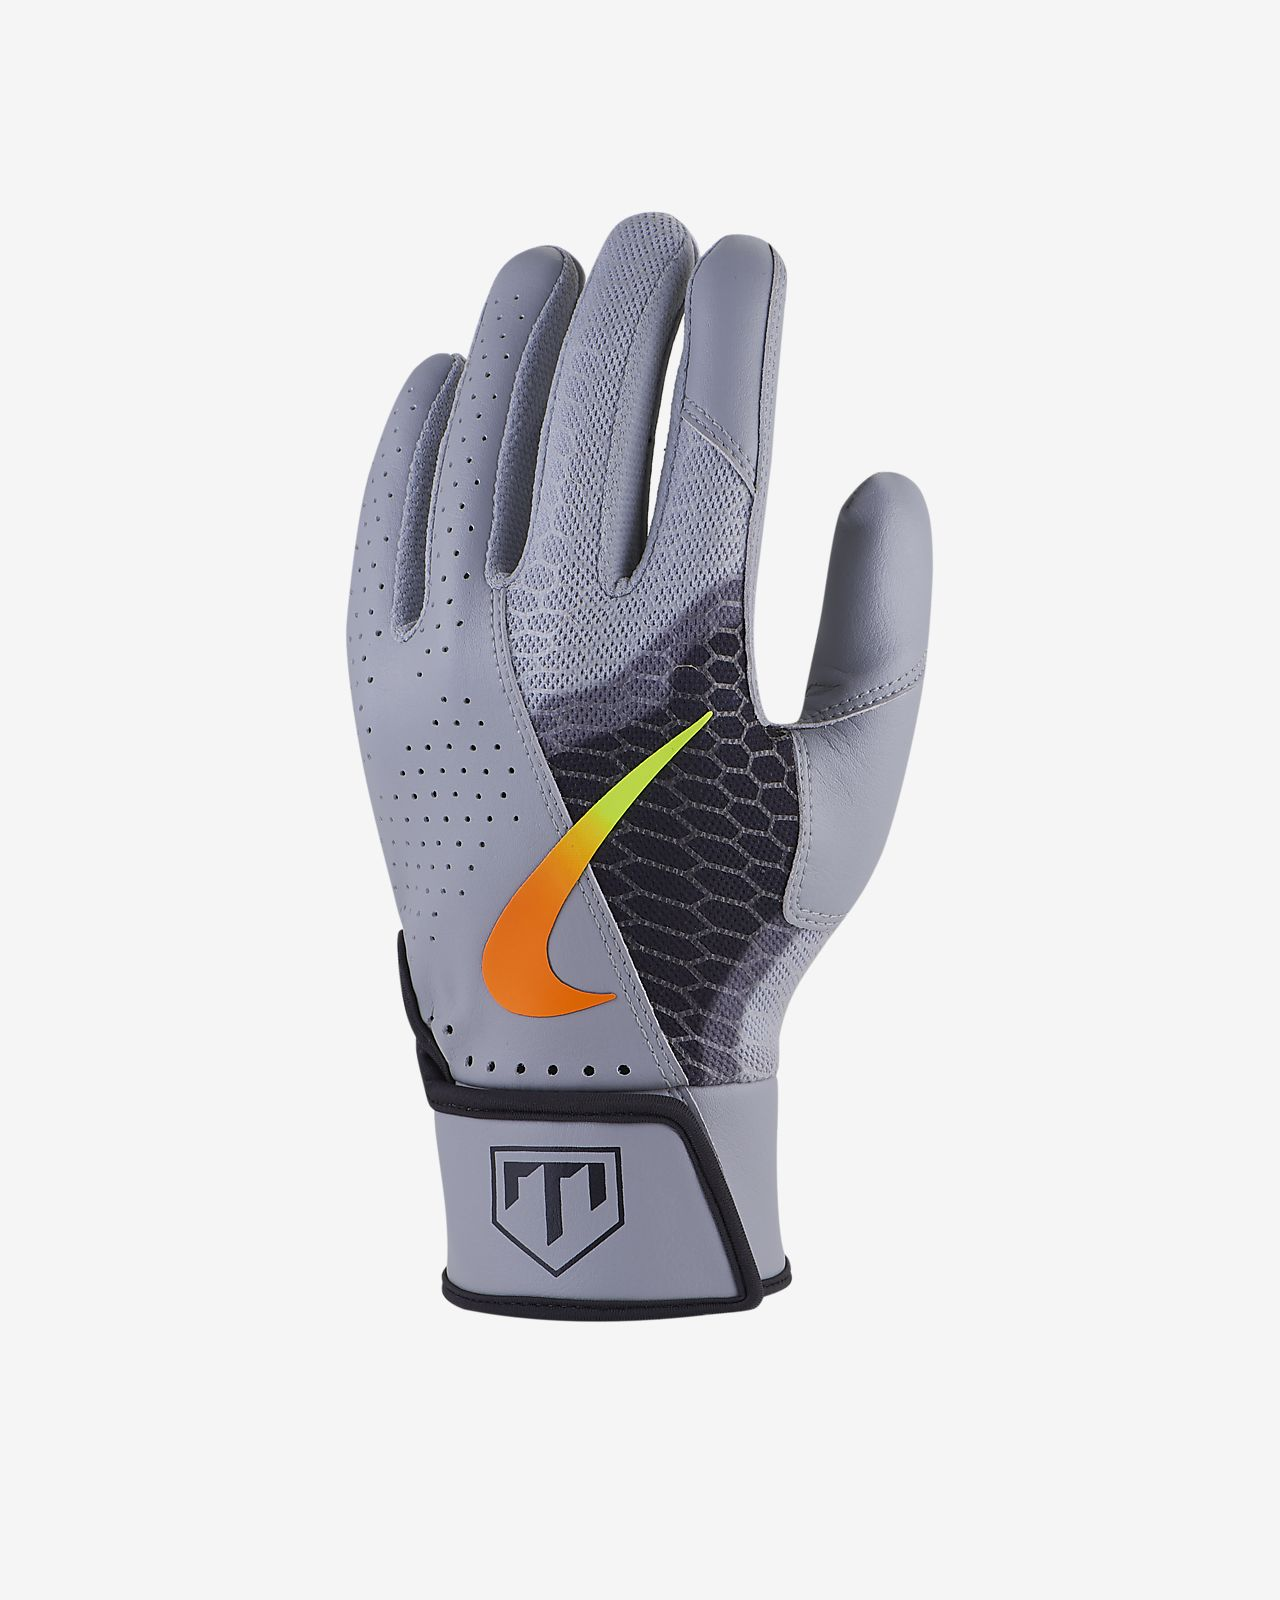 b43bf5bbbc4 Nike Trout Edge 2.0 Kids' Baseball Batting Gloves. Nike.com